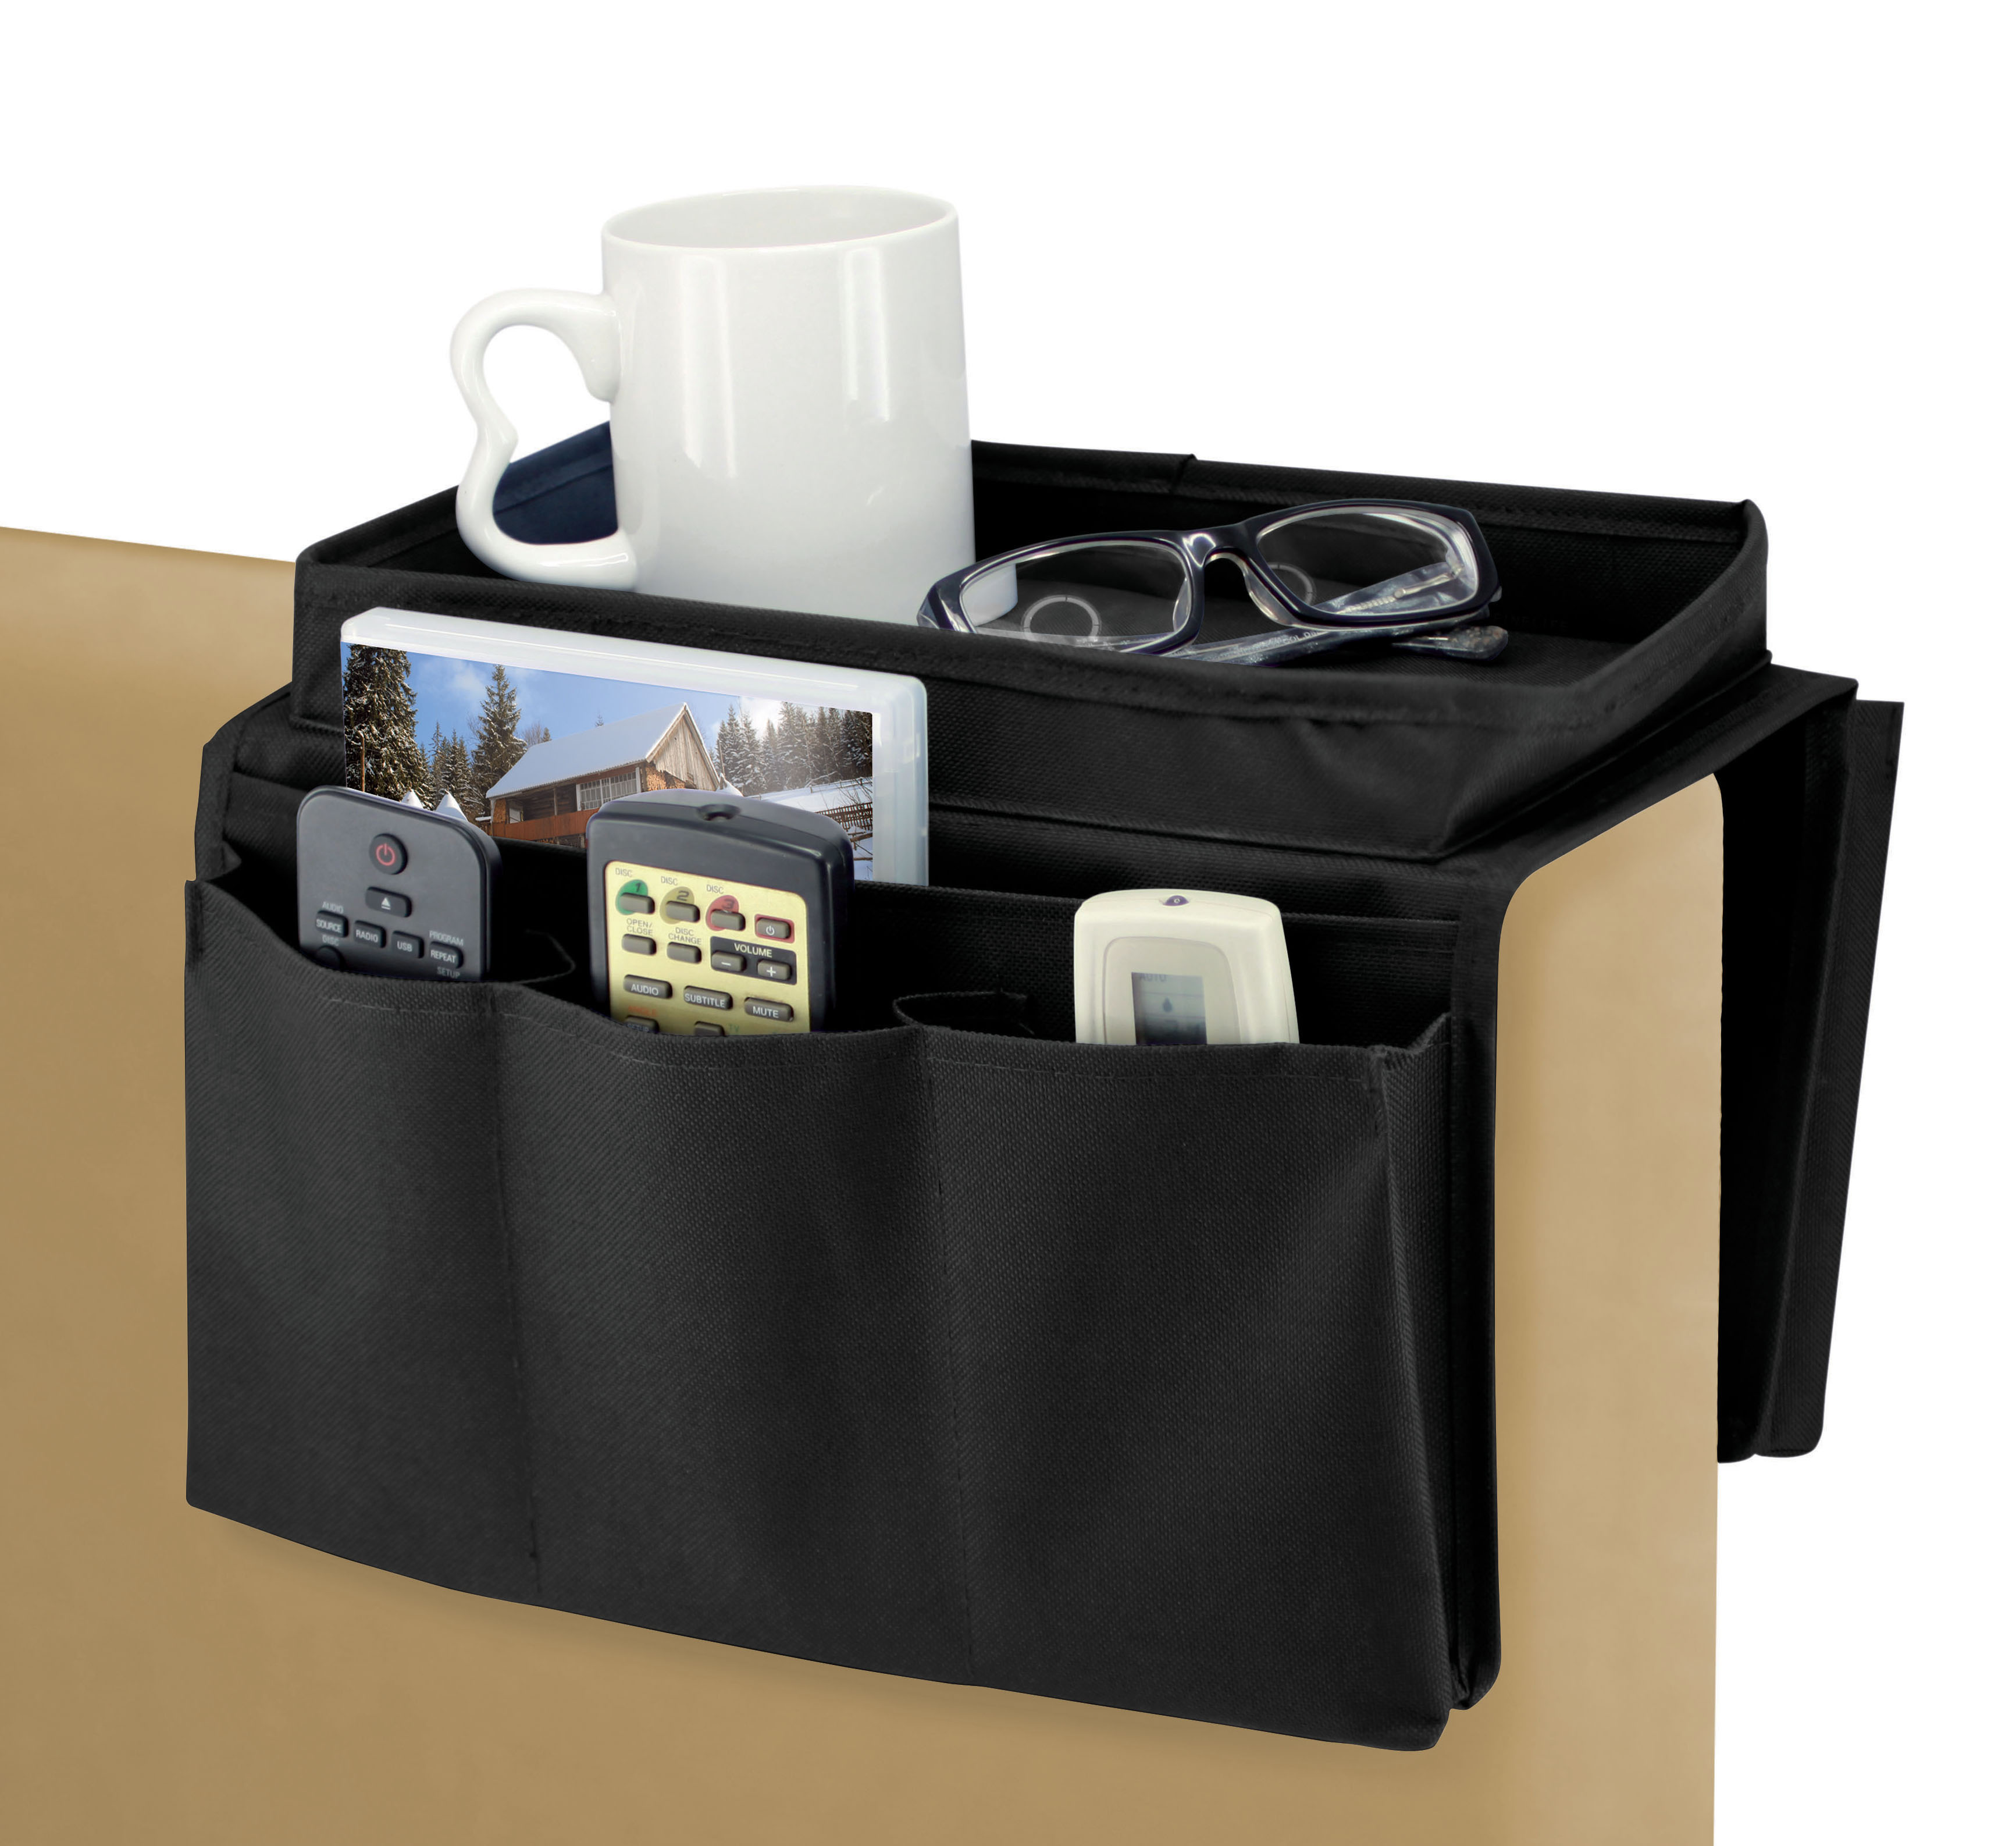 Hd-02193 - Armchair Caddy Sears Outlet